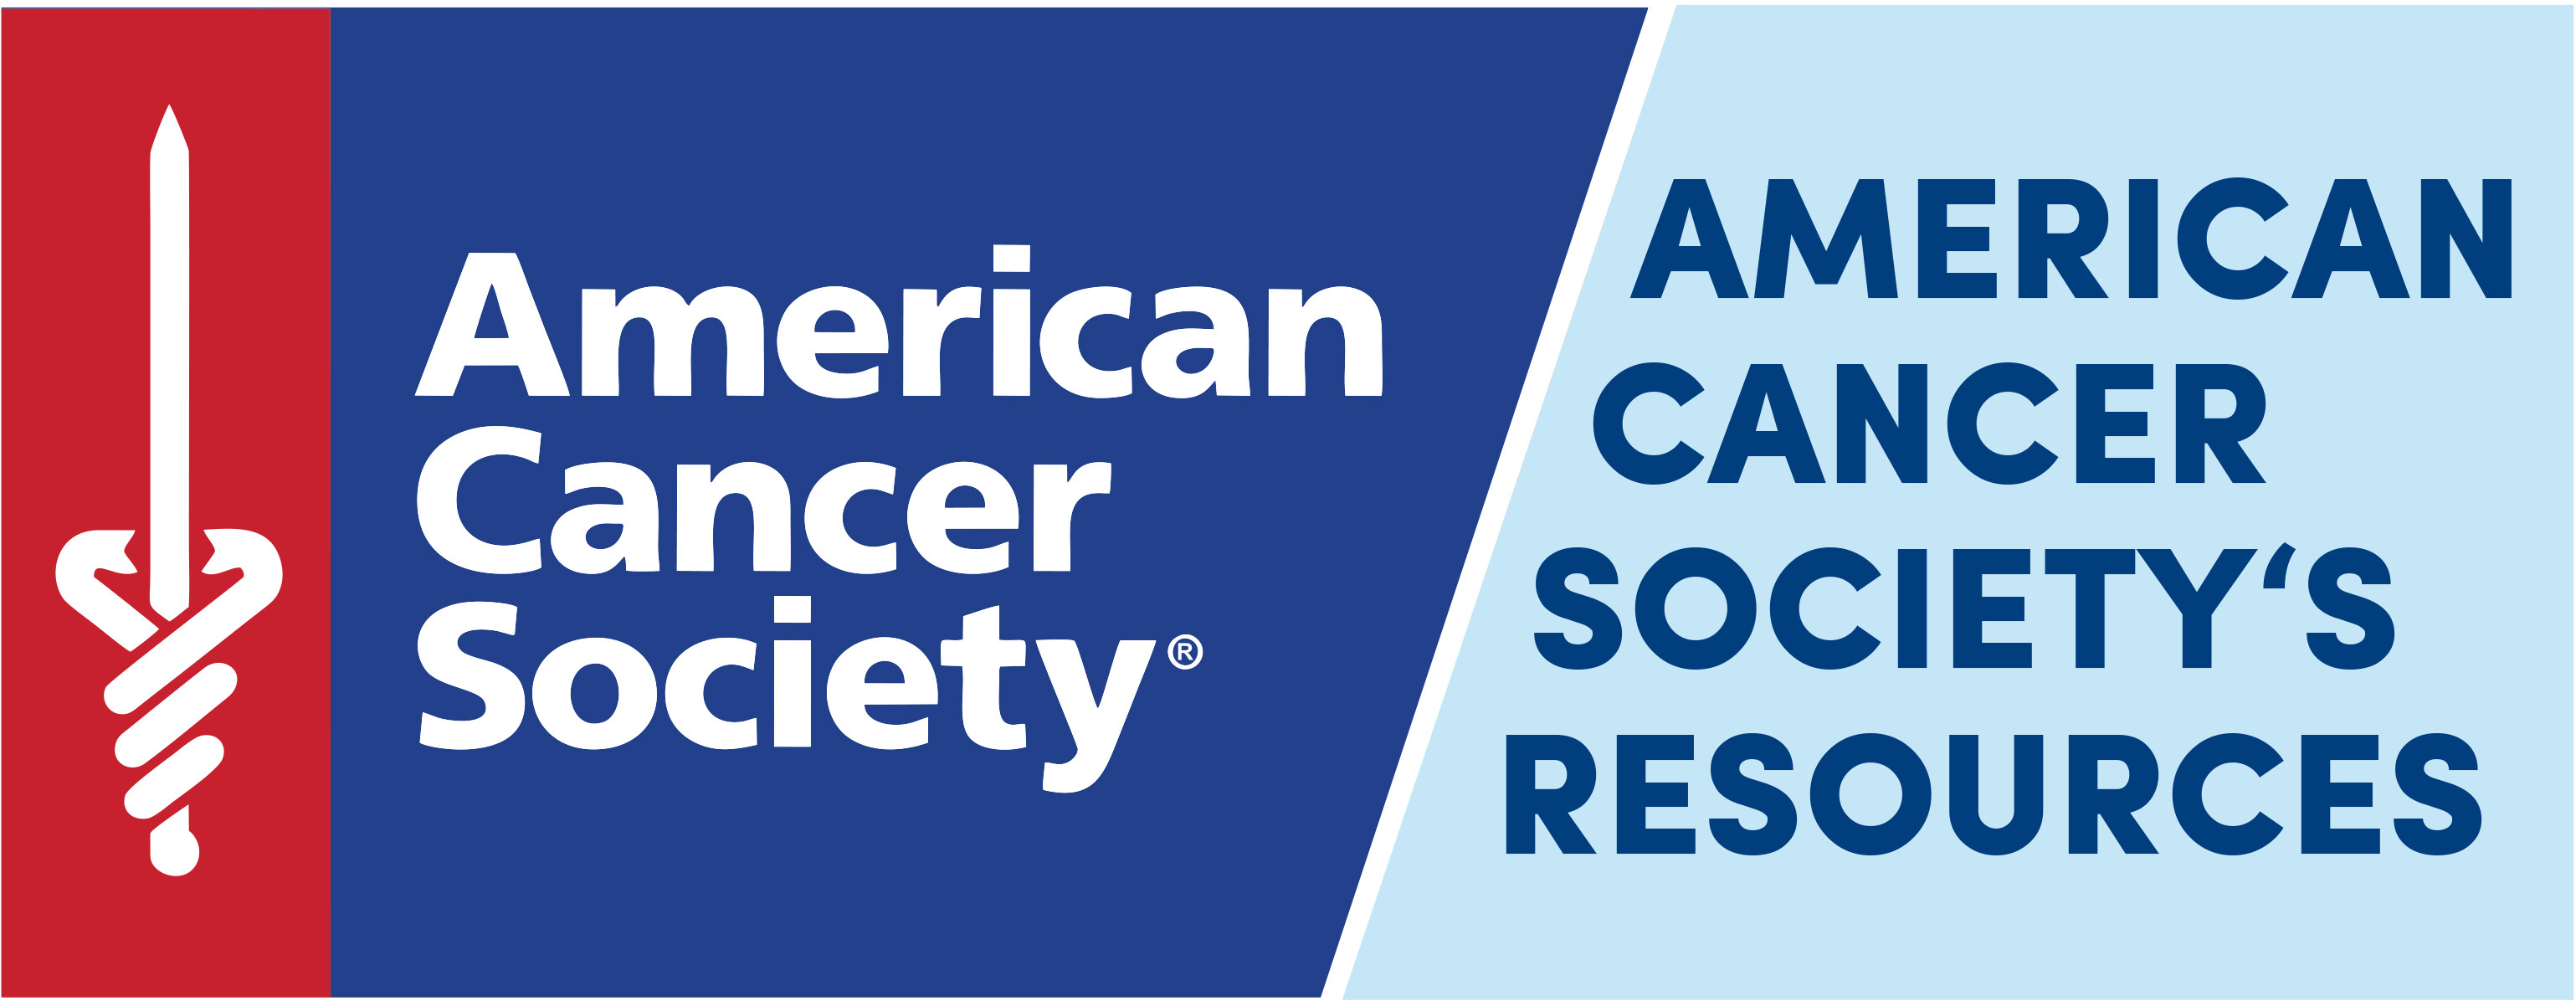 American Cancer Society's Resources